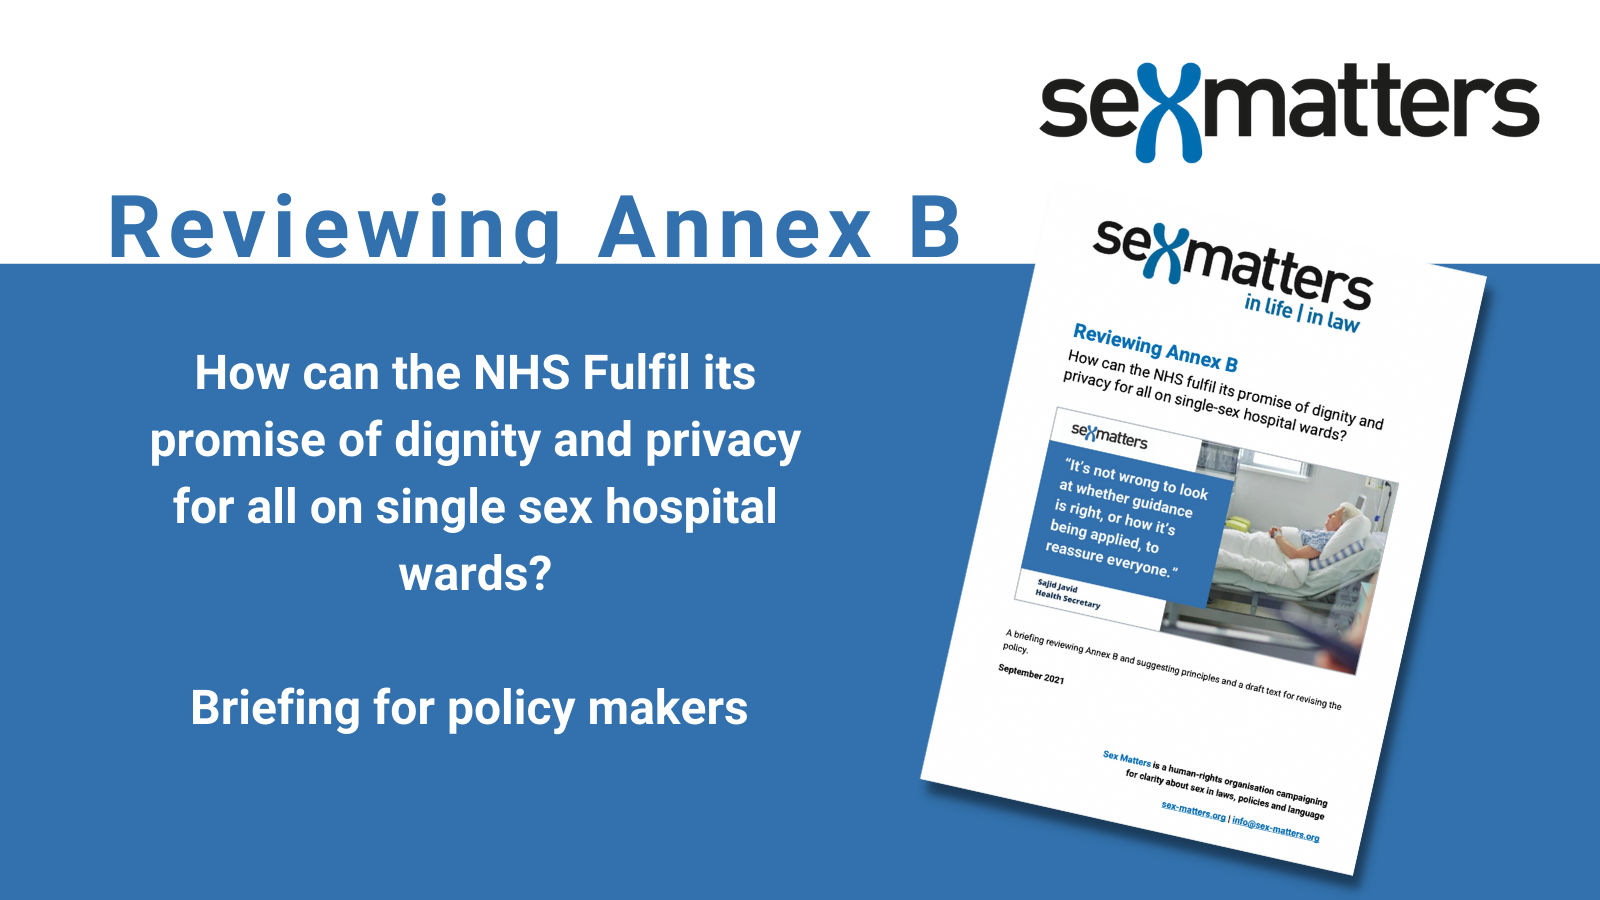 Reviewing Annex B: Briefing for policy makers